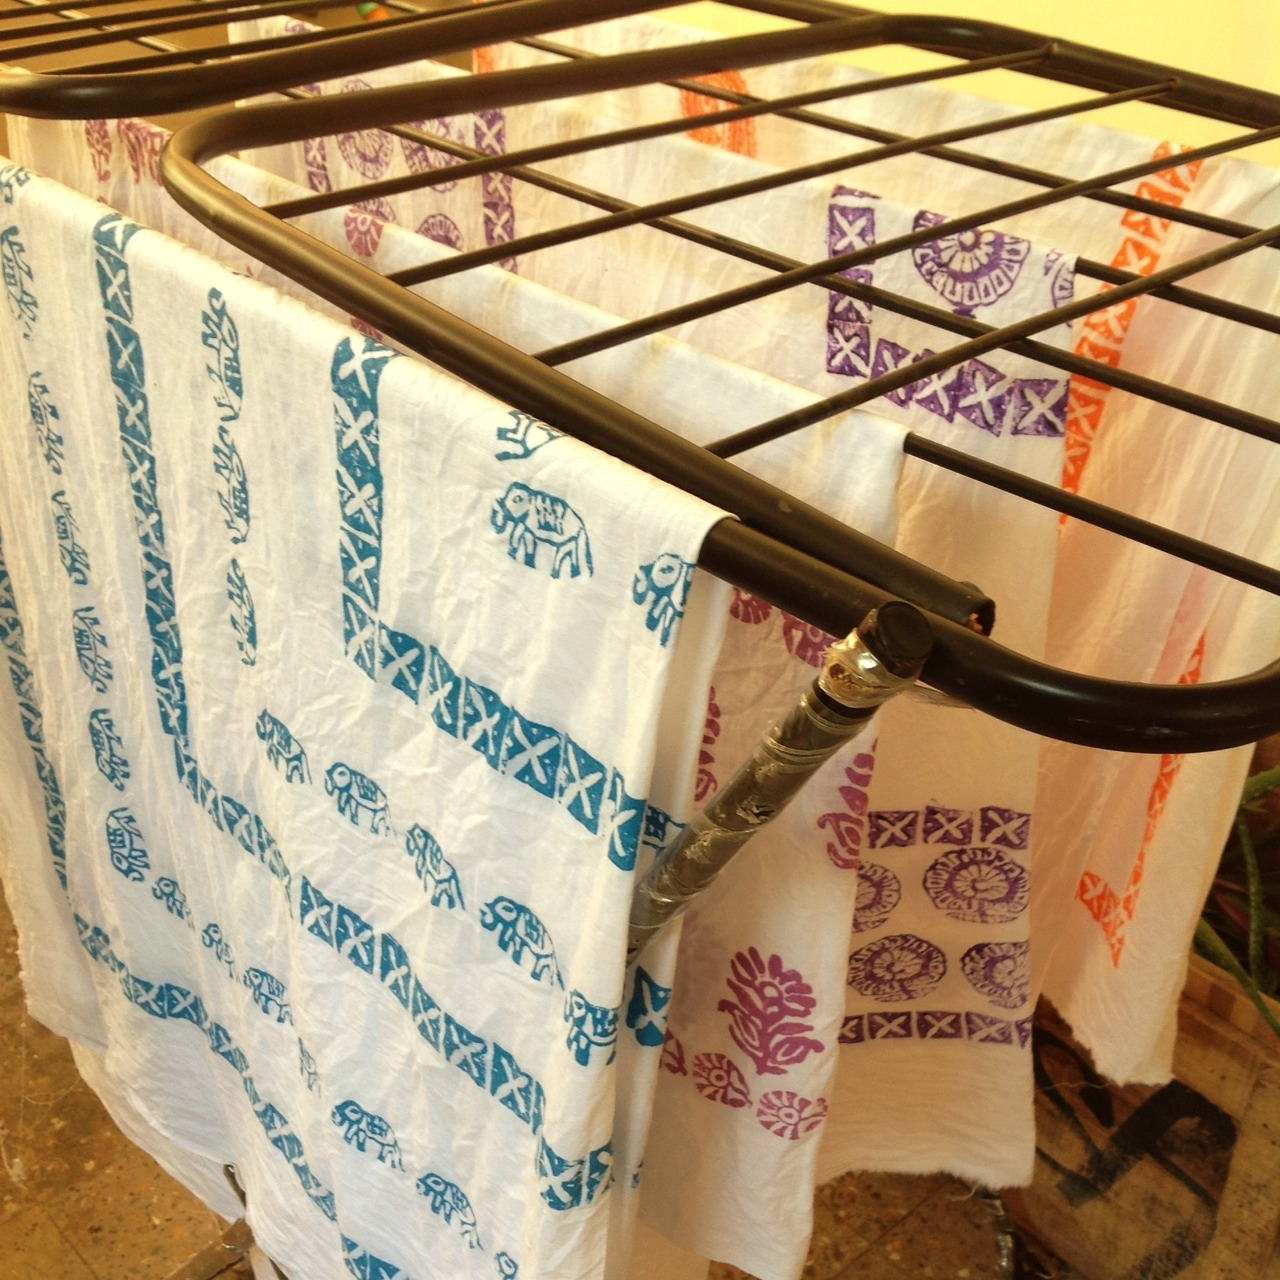 These are hand printed fabrics on cloth stand, left for drying